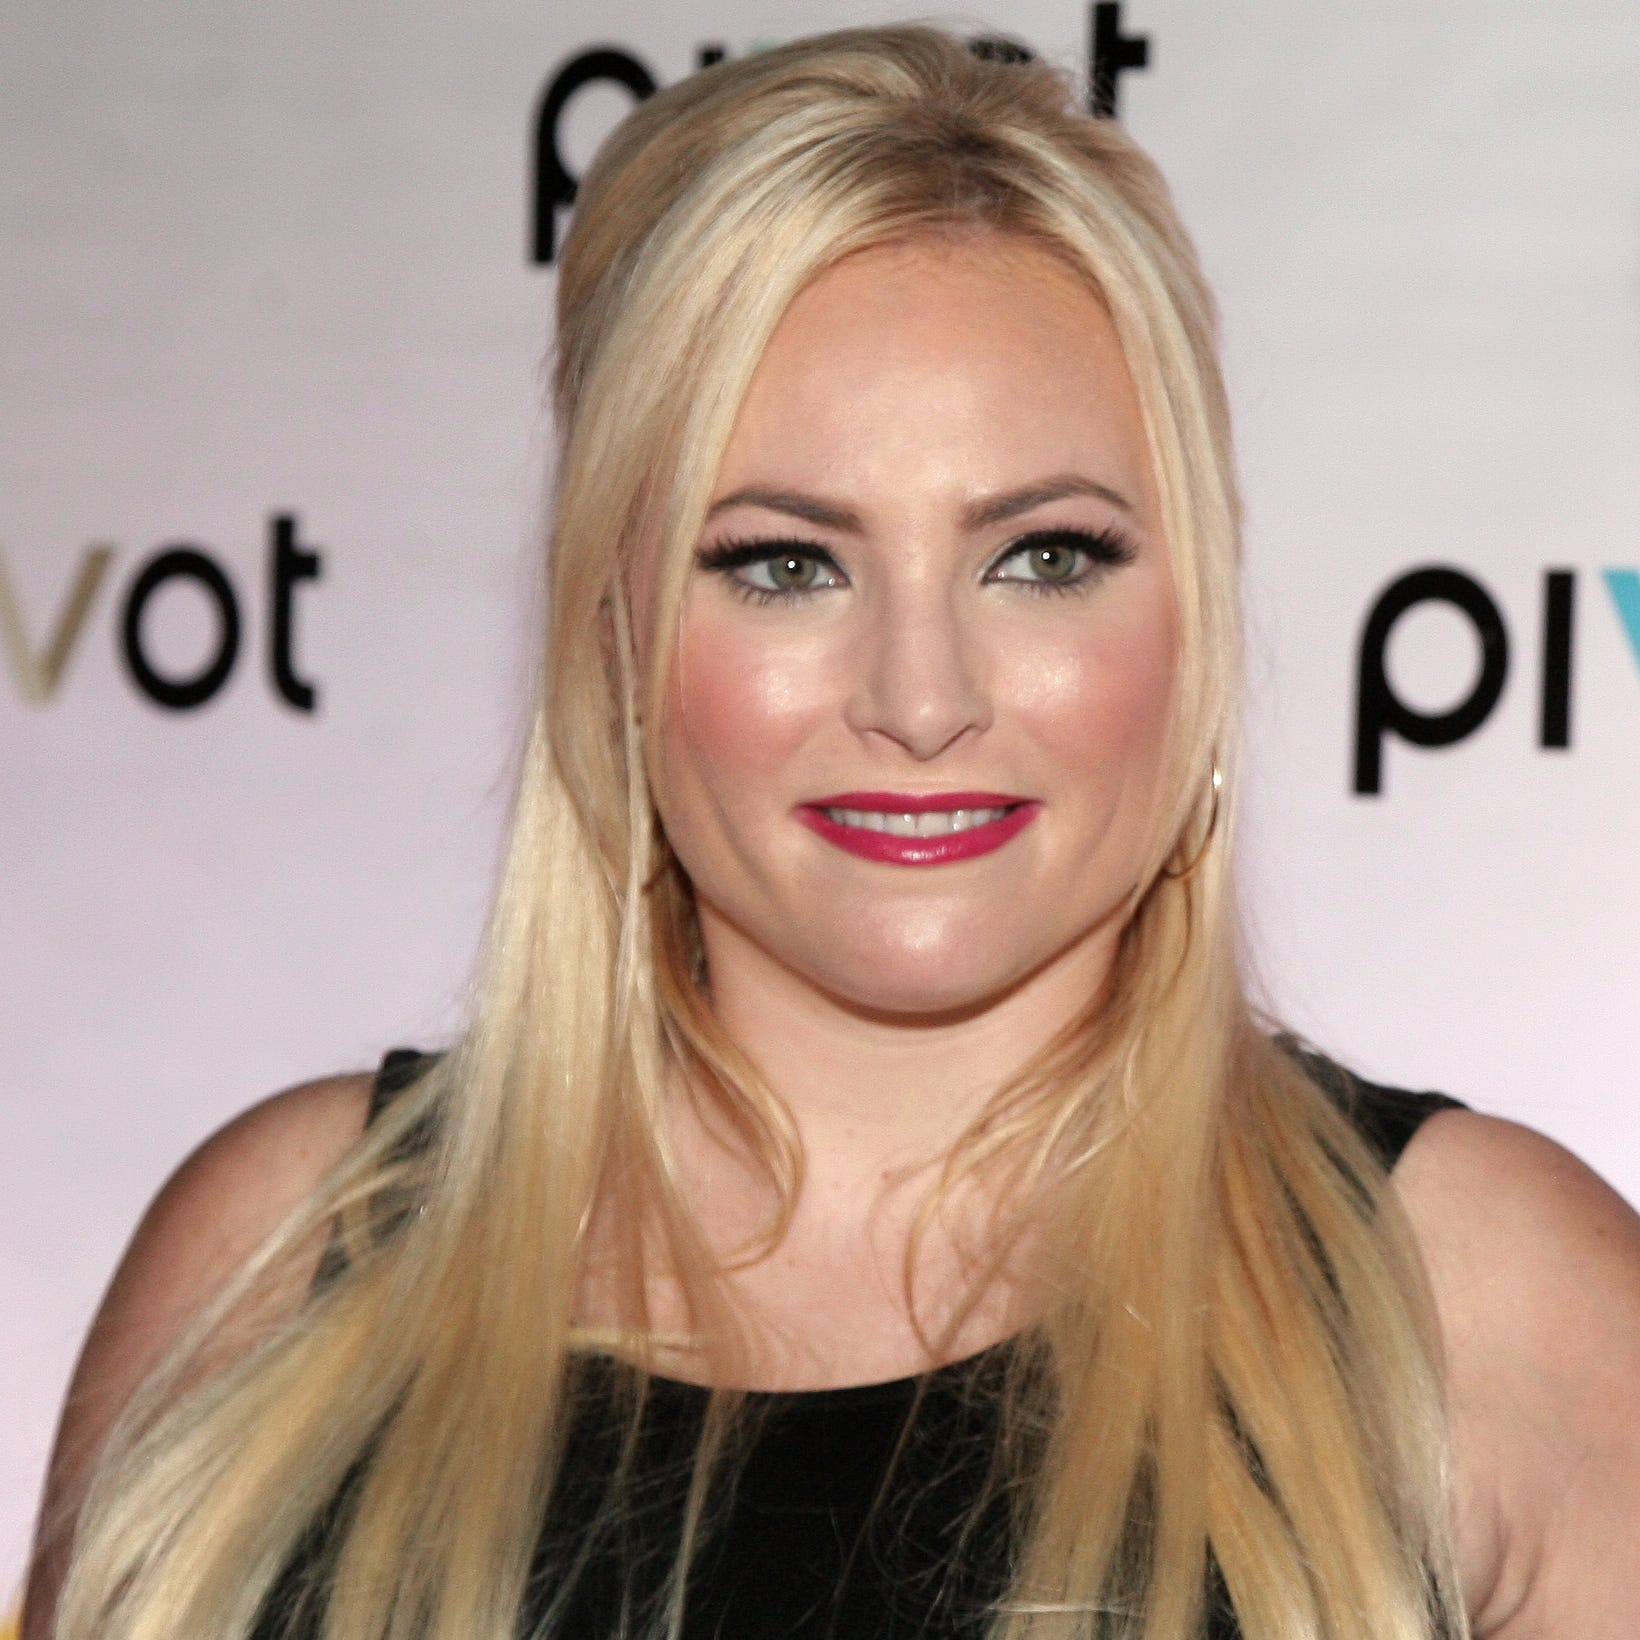 Meghan McCain's raw grief over losing her dad: 'I still can't go back home to Arizona'